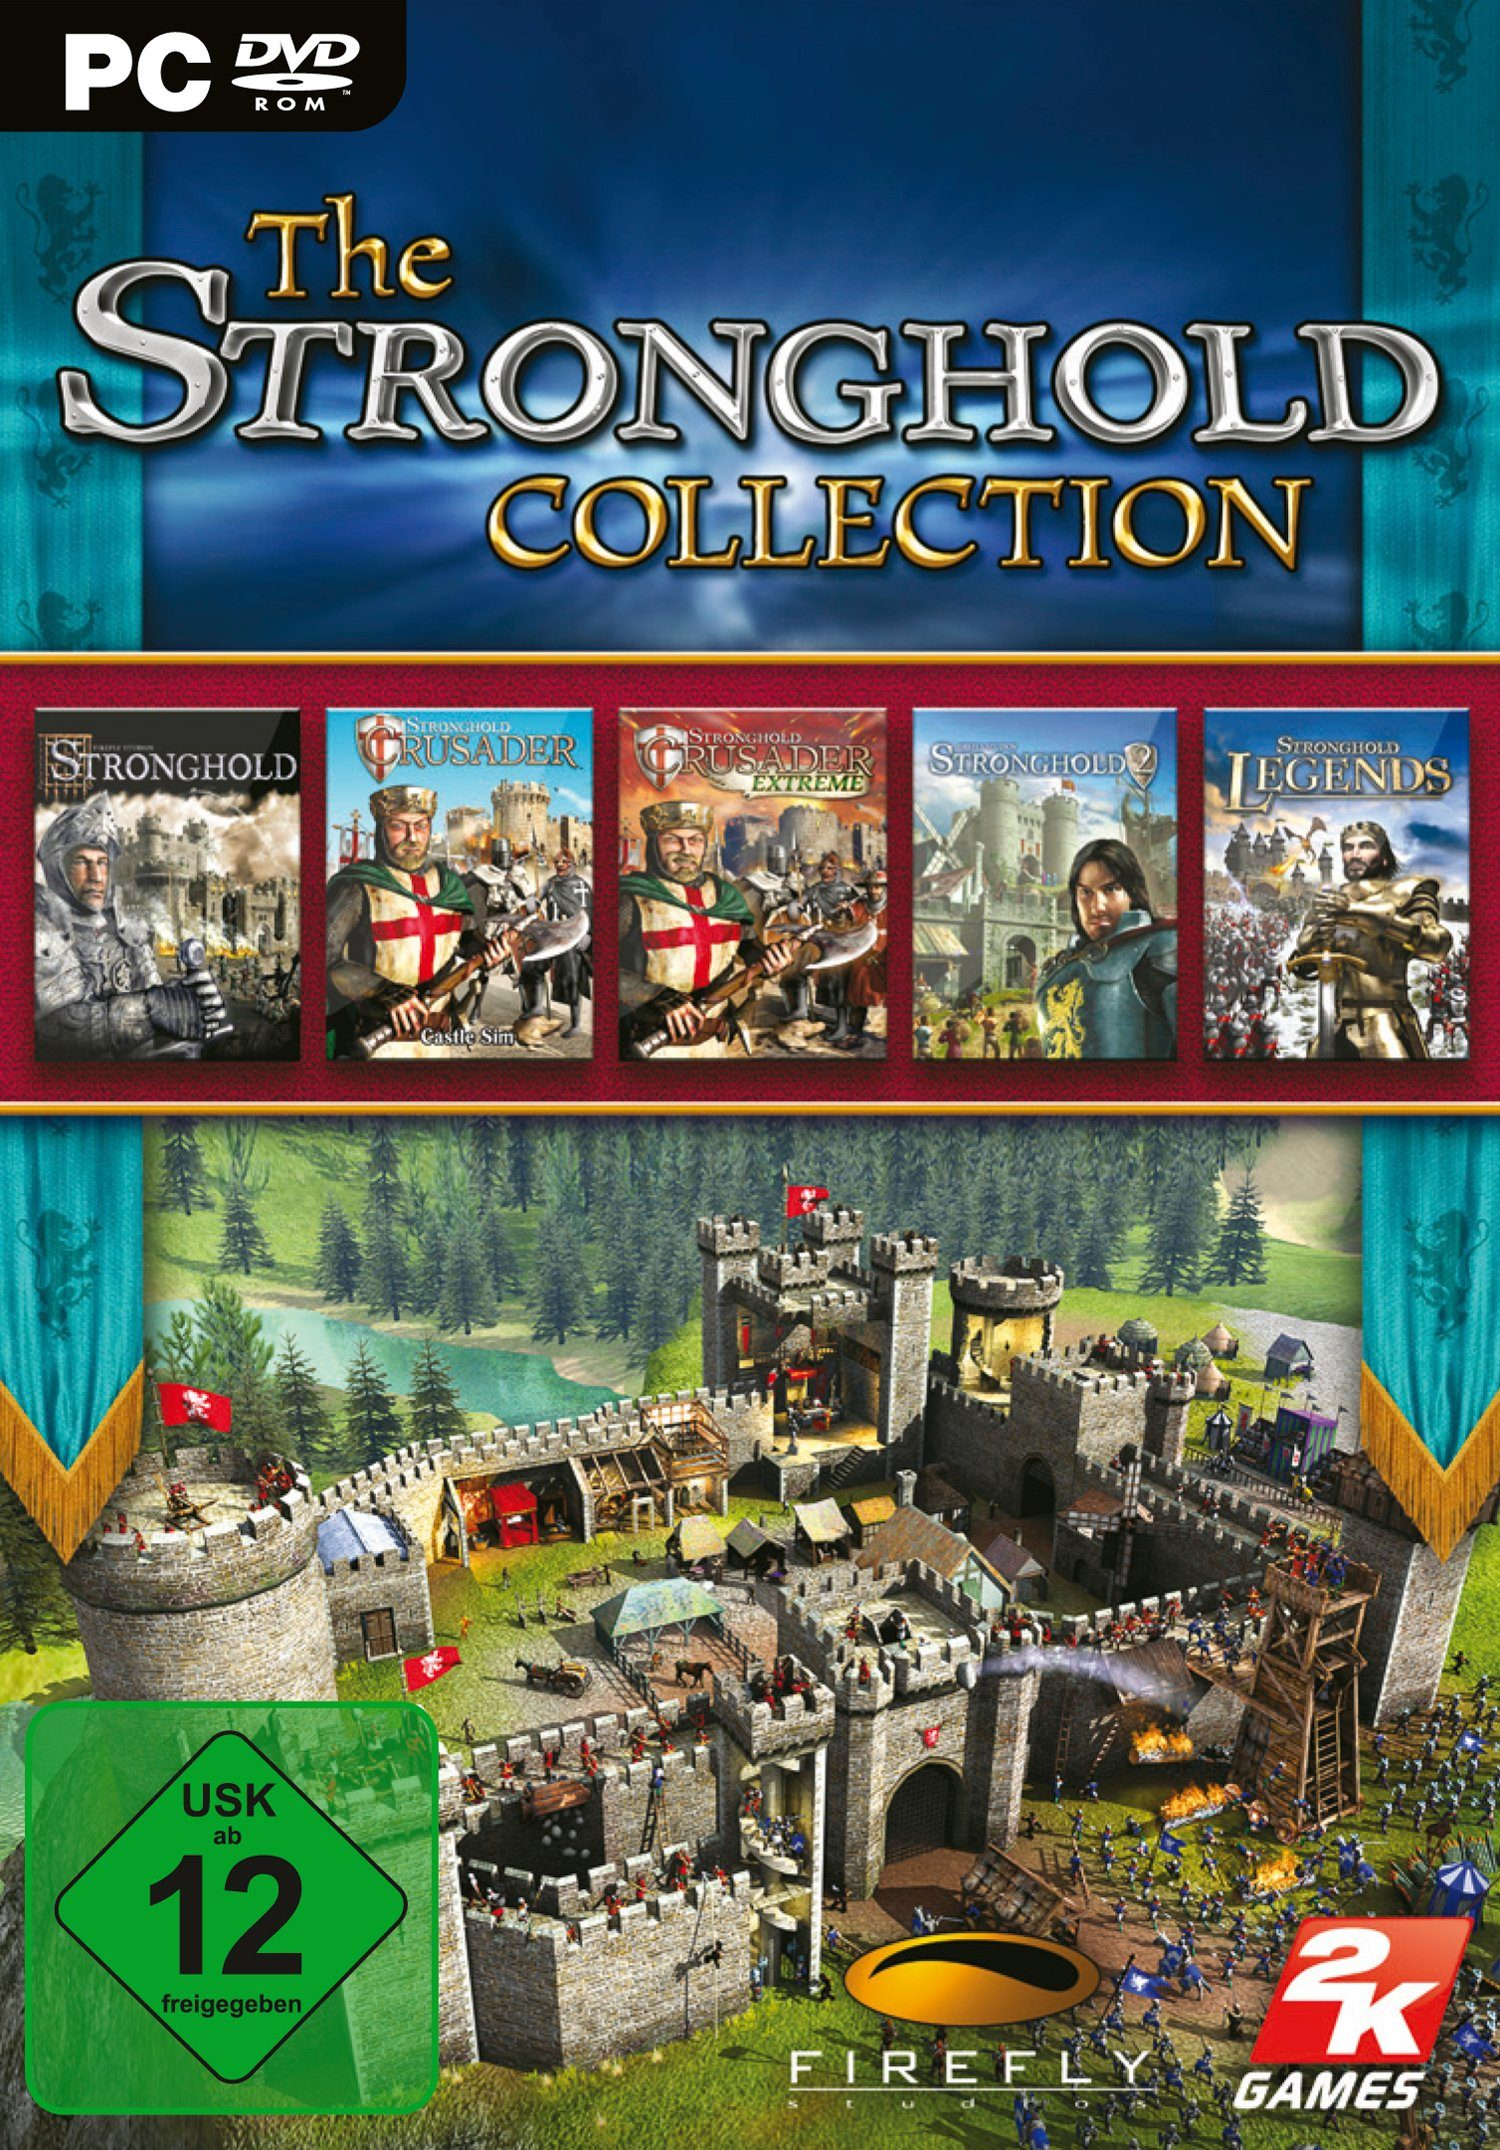 Take Two Software Pyramide - PC Spiel »The Stronghold Collection«